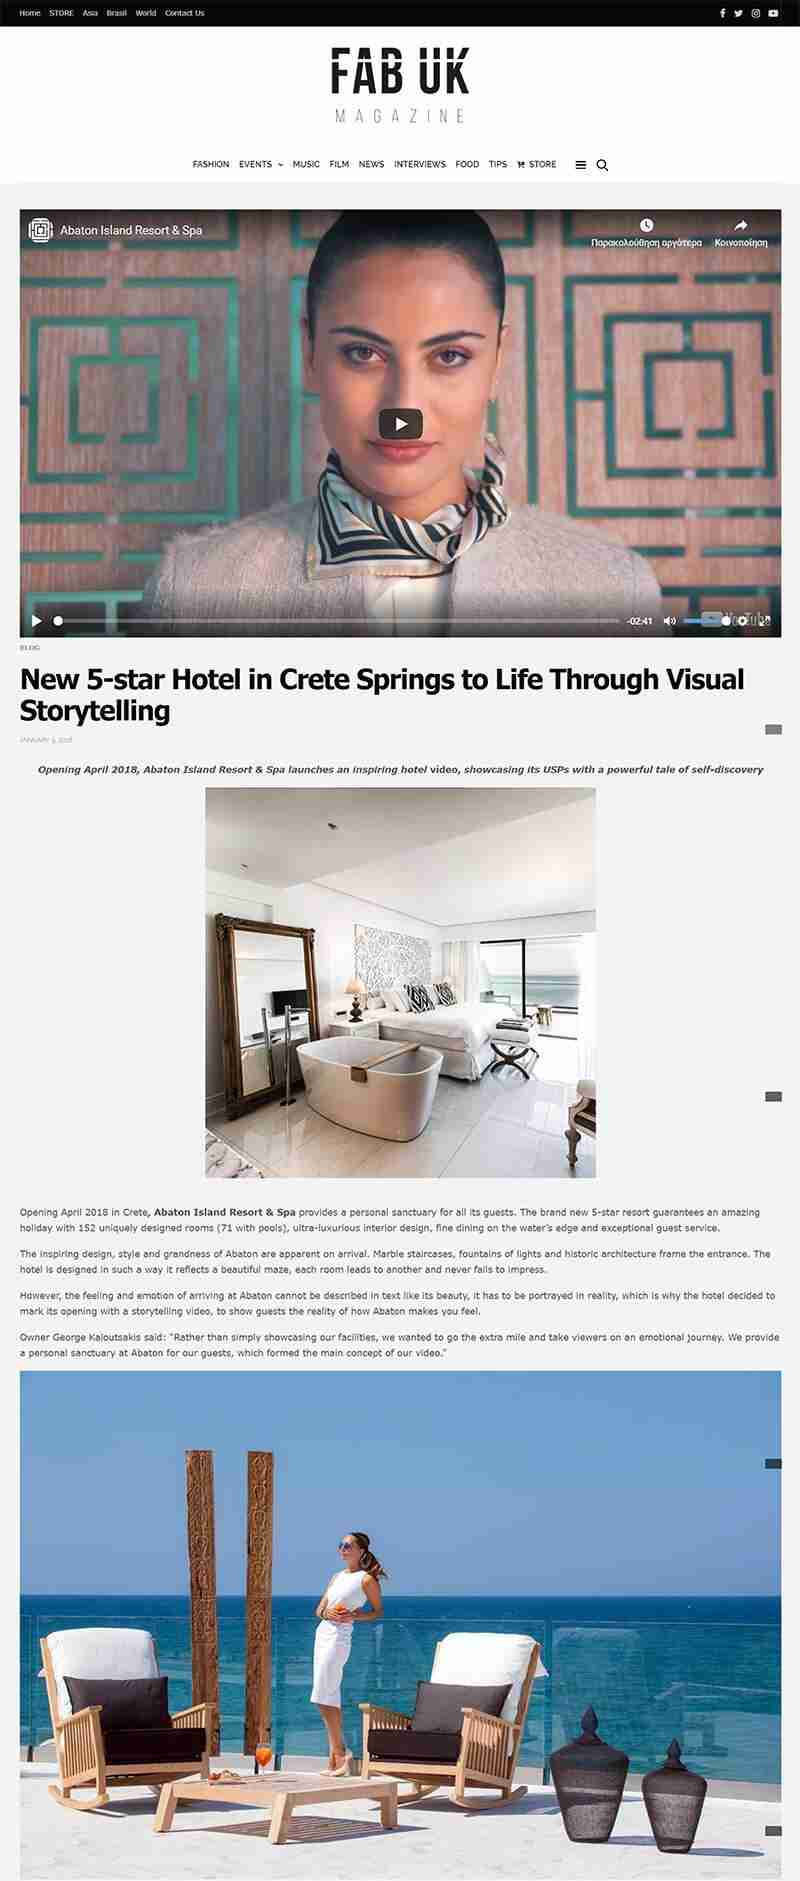 New 5-star Hotel in Crete Springs to Life Through Visual Storytelling